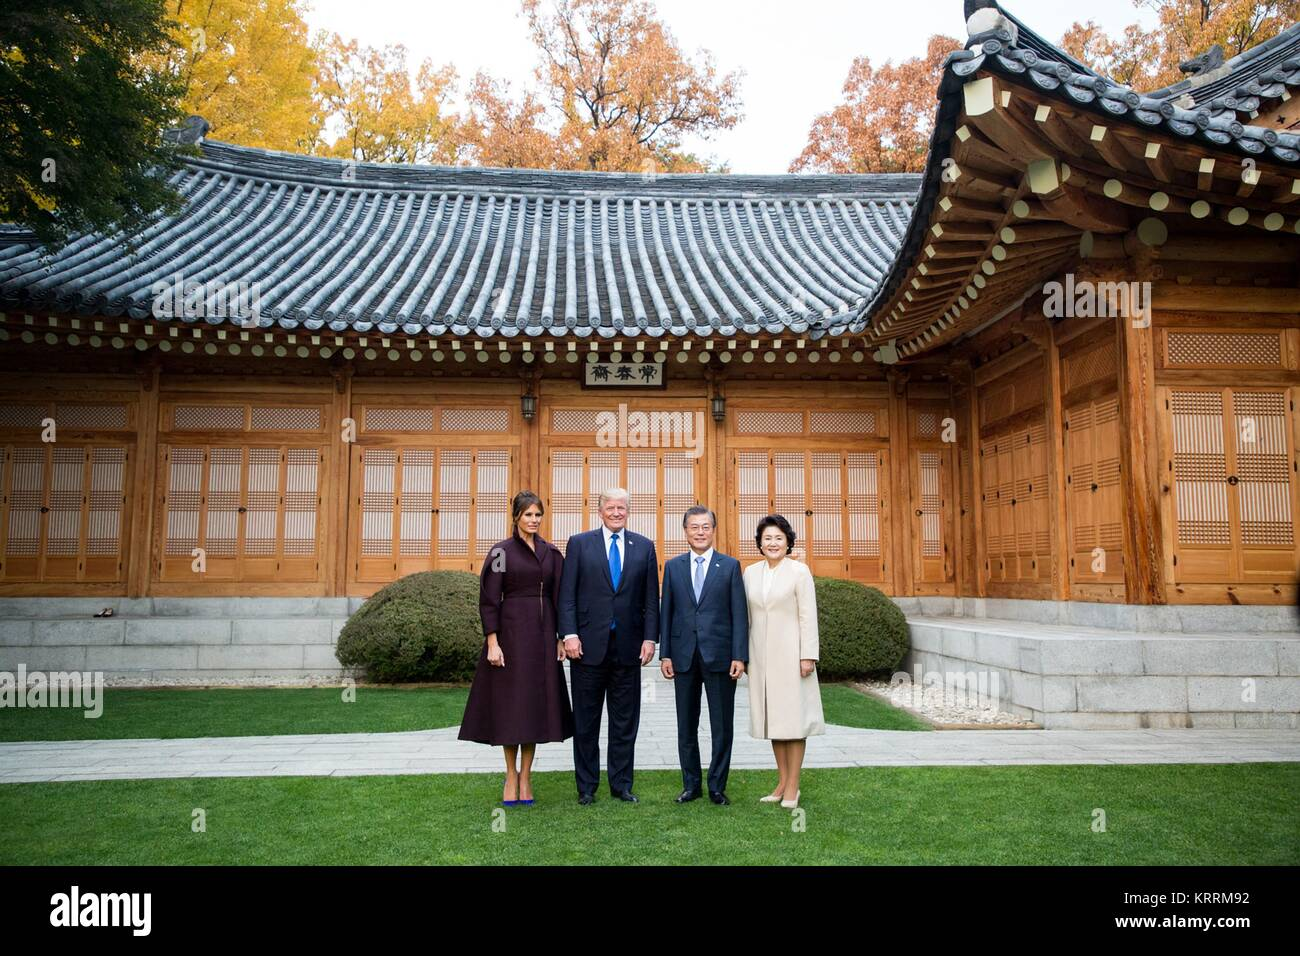 U.S. First Lady Melania Trump, U.S. President Donald Trump, South Korean President Moon Jae-in, and wife Kim Jung - Stock Image